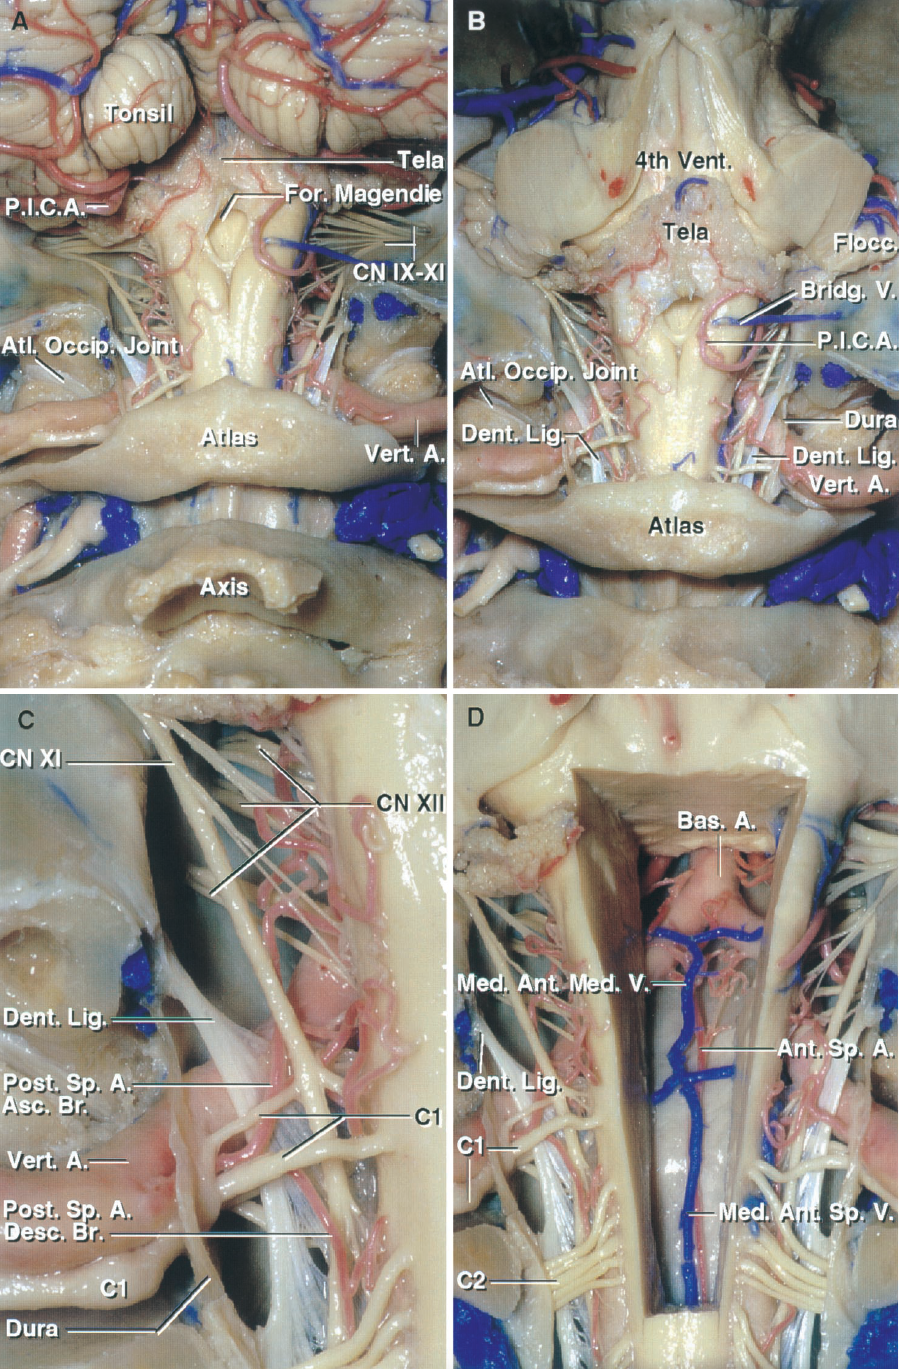 FIGURE 6.3. A–D. Foramen magnum. Posterior view. Stepwise dissection. A, the cerebellar tonsils, the foramen of Magendie, and lower part of the fourth ventricle are situated above the foramen magnum. The vertebral artery penetrates the dura below the foramen magnum and ascends through the foramen in front of the dentate ligament and accessory nerves. The glossopharyngeal, vagus, and accessory nerves pass through the jugular foramen, which is located lateral to the anterior half of the foramen magnum. B, the cerebellum has been removed. The vertebral arteries pass through the foramen magnum to reach the front of the medulla. C, enlarged view of the left half of the foramen magnum. The vertebral artery passes behind and below the atlanto-occipital joint, penetrates the dura, and passes in front of the dentate ligament and accessory nerve. The rostral end of the dentate ligament attaches to